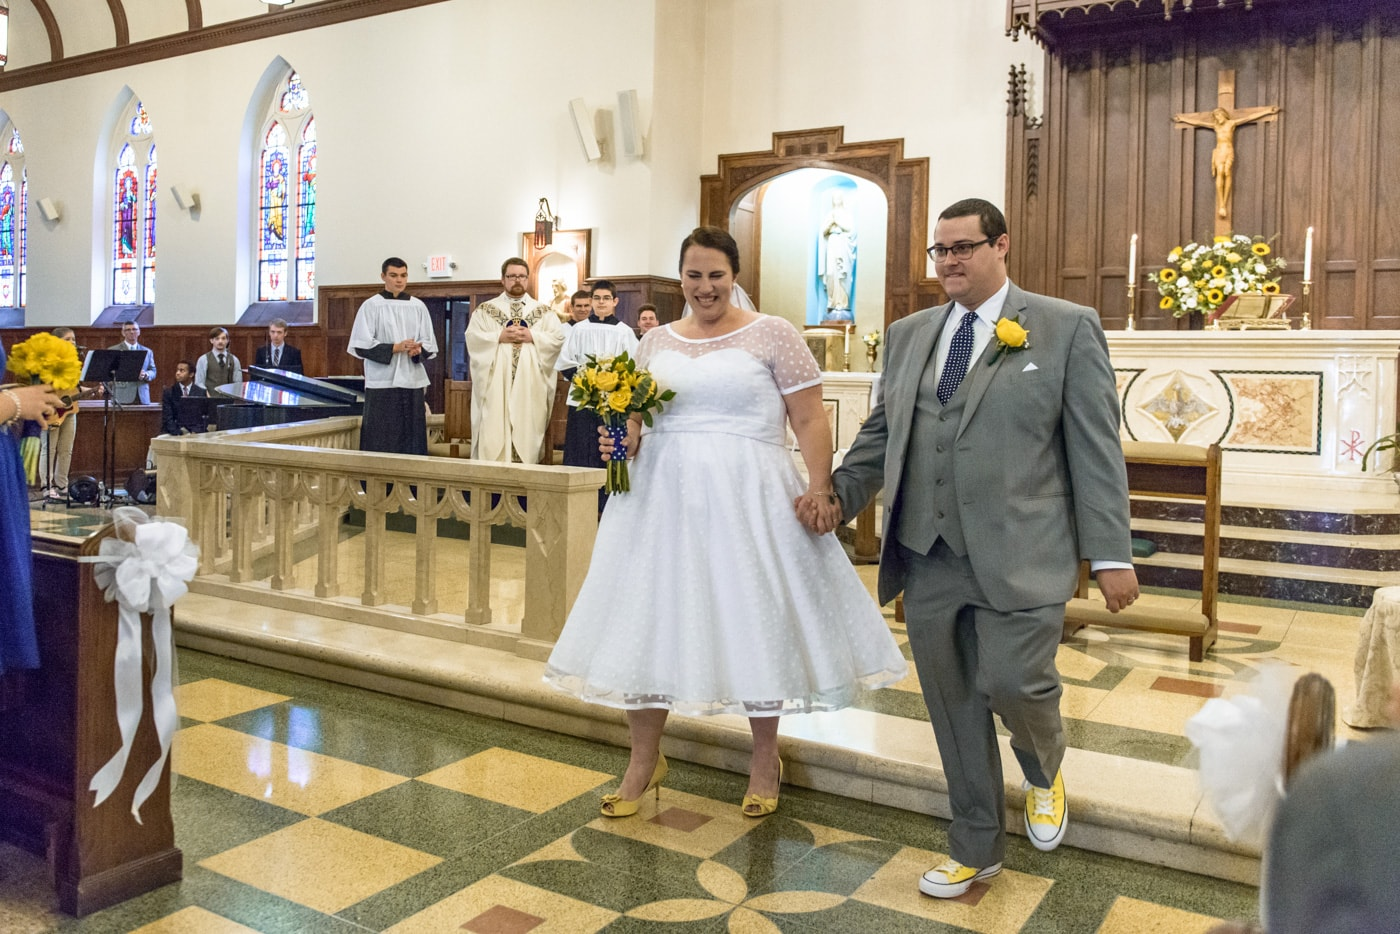 The bride and groom face their guests at the end of their wedding ceremony at St James Catholic Church in Falls Church, Virginia